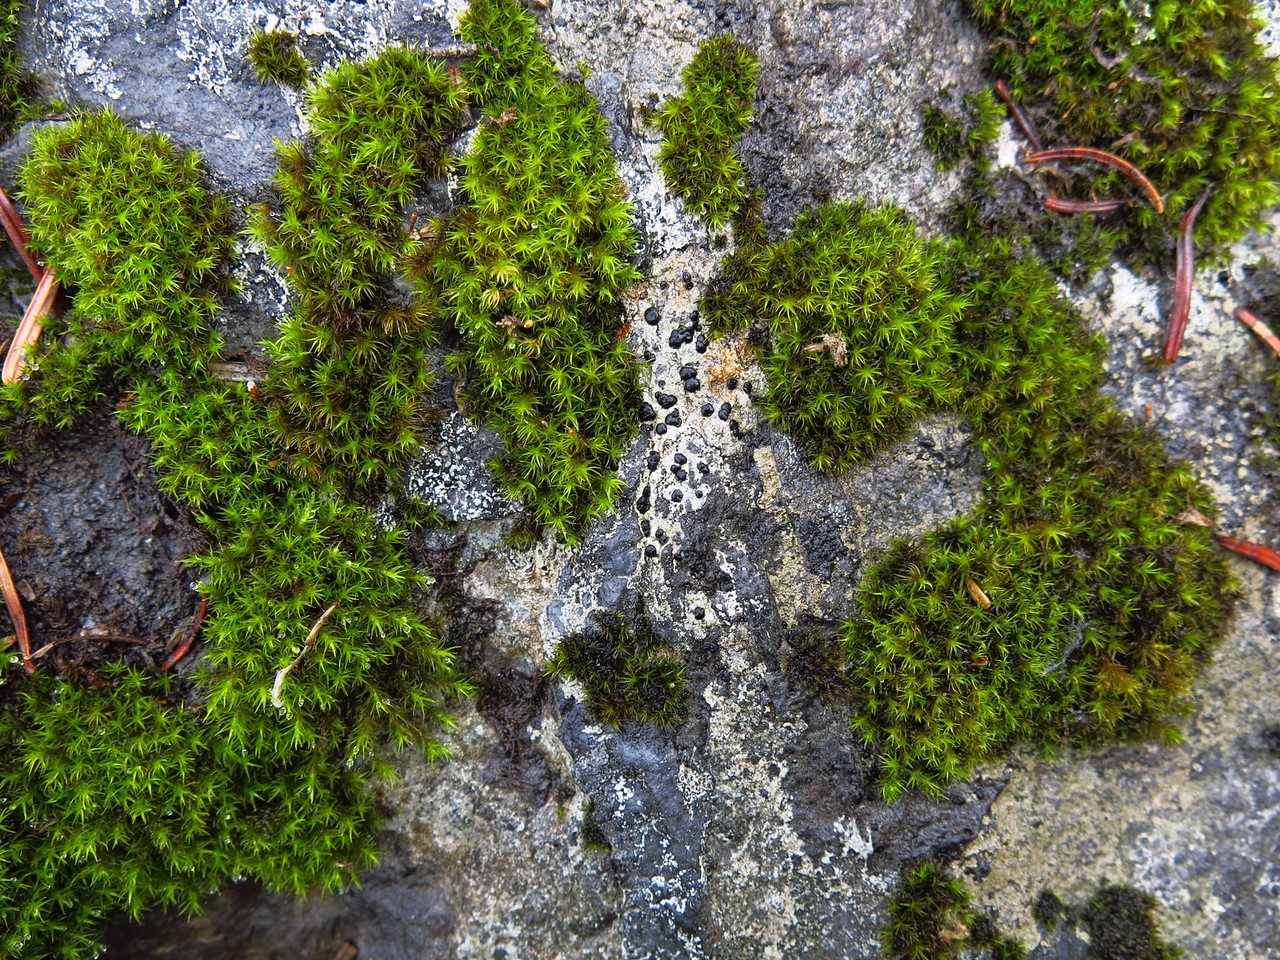 Interesting lichen somehow manage to cling to and survive on the rock surface.